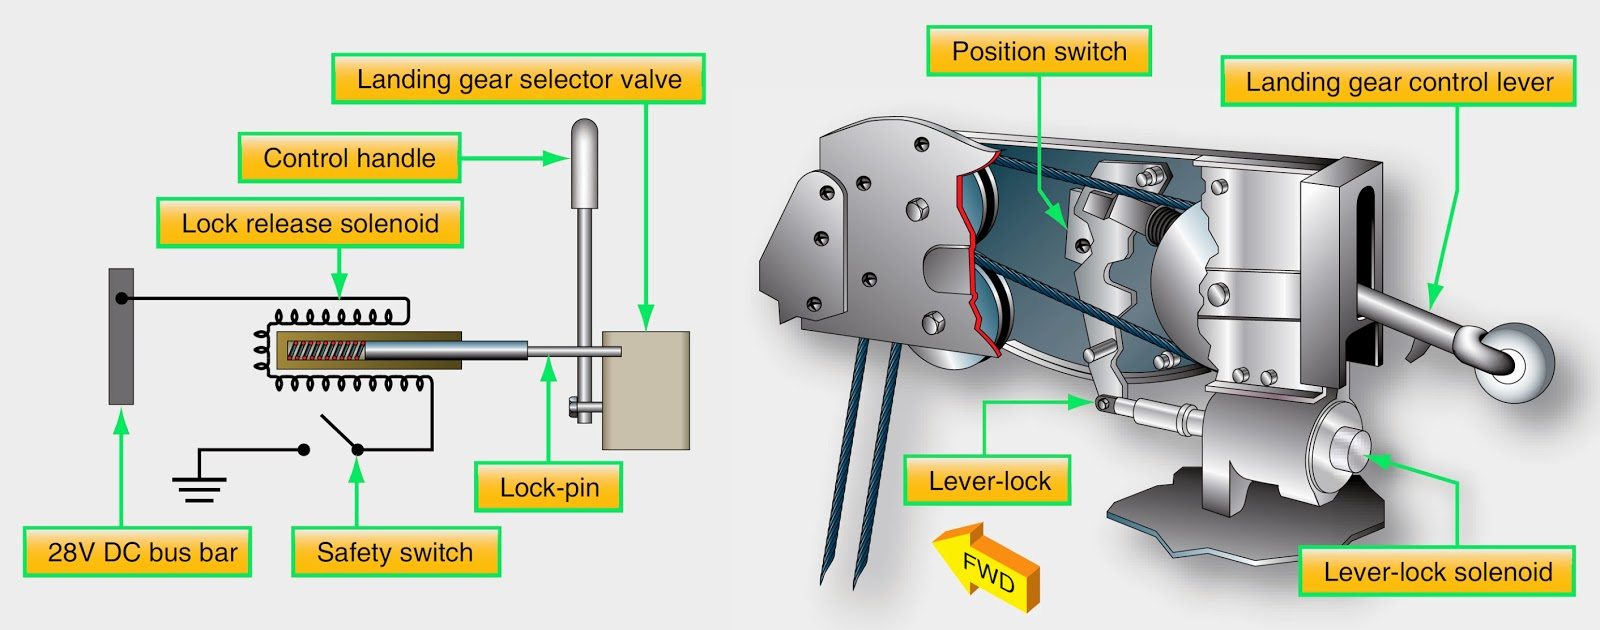 Aircraft systems: Landing Gear Safety Devices